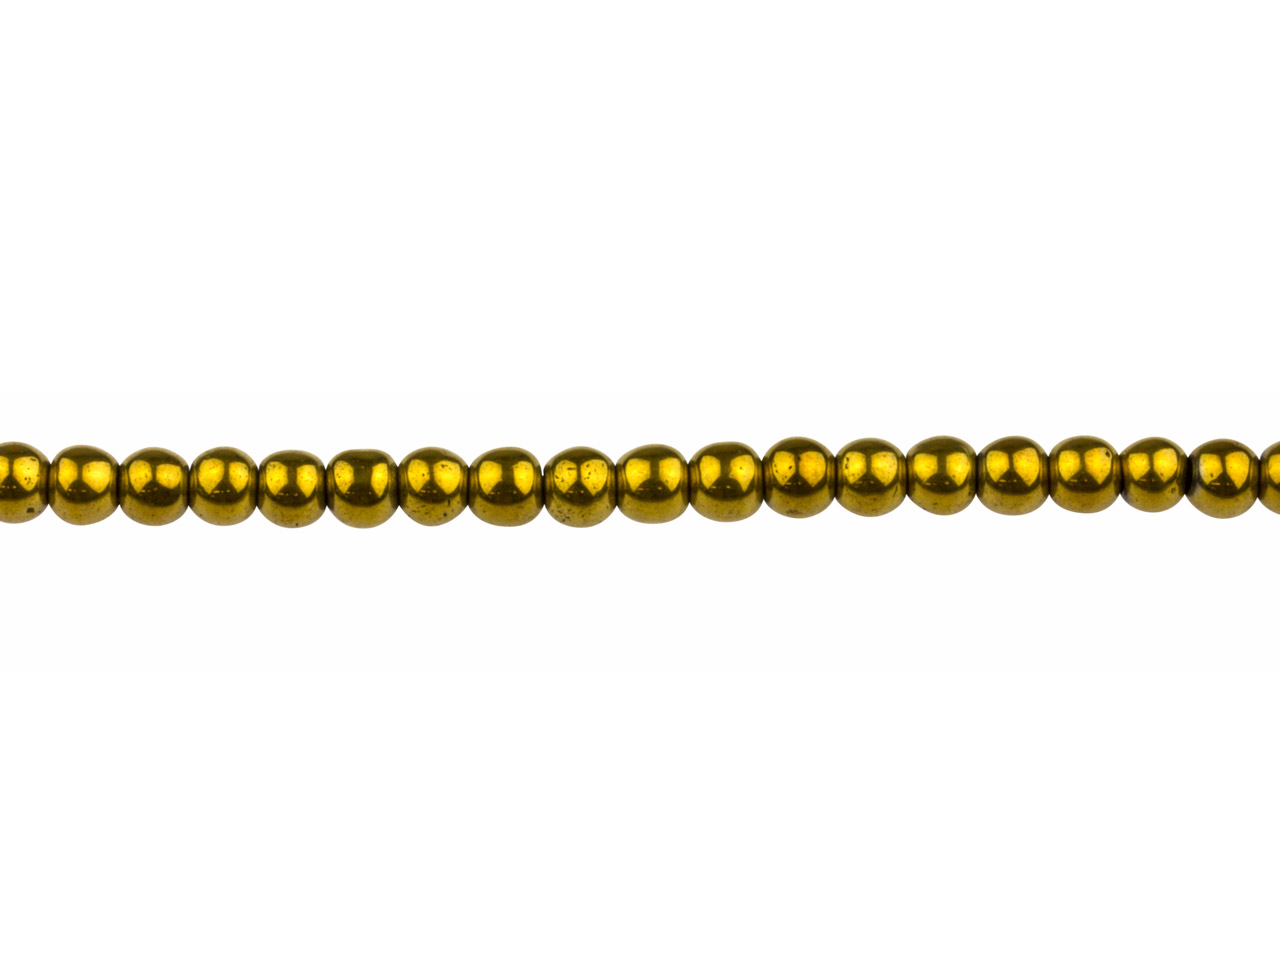 Electroplated Hematite Semi        Precious Round Beads, Gold, 4mm,   16